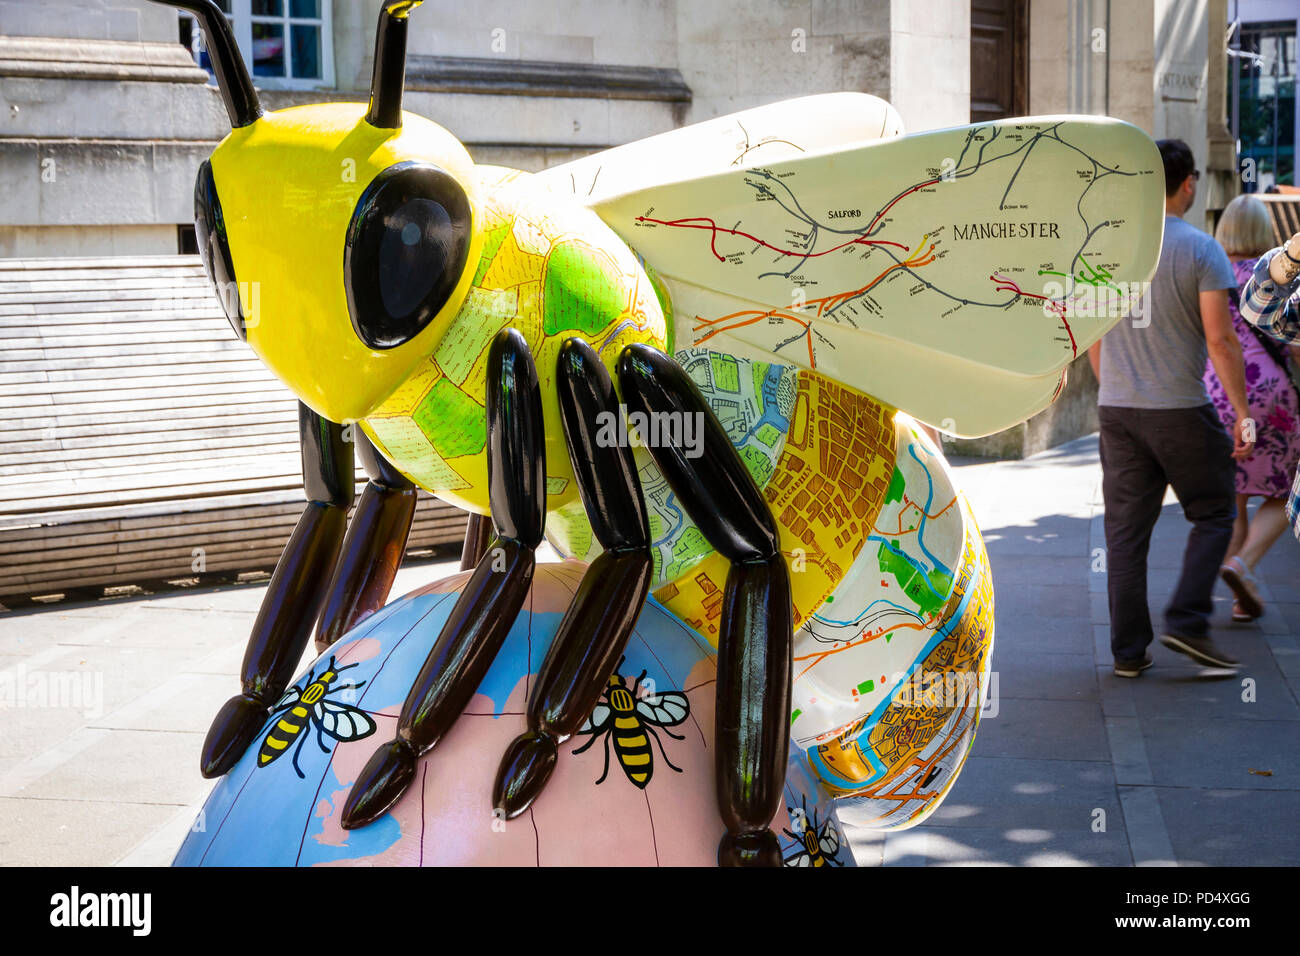 Map of the Worker Bees - Caroline Coates. Bee in the City, public art event in the City of Manchester. Over 100 bees on a free family fun trail. - Stock Image